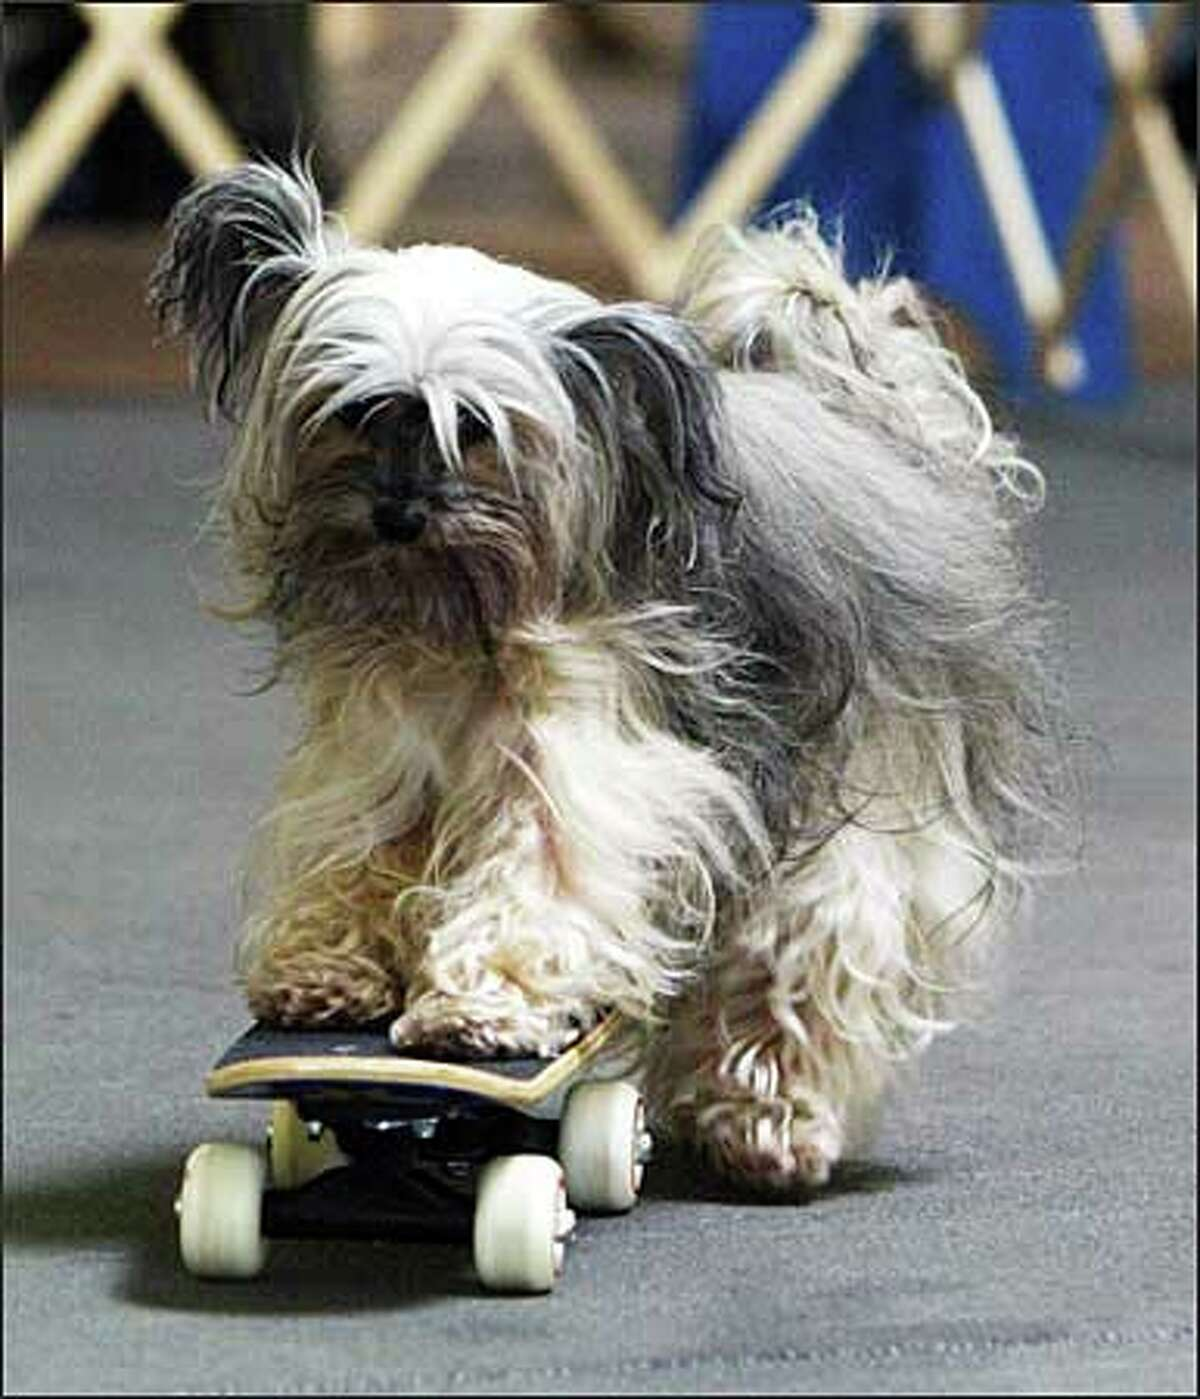 Sprite (a Chinese Crested) enters the arena on a skateboard to the tune of